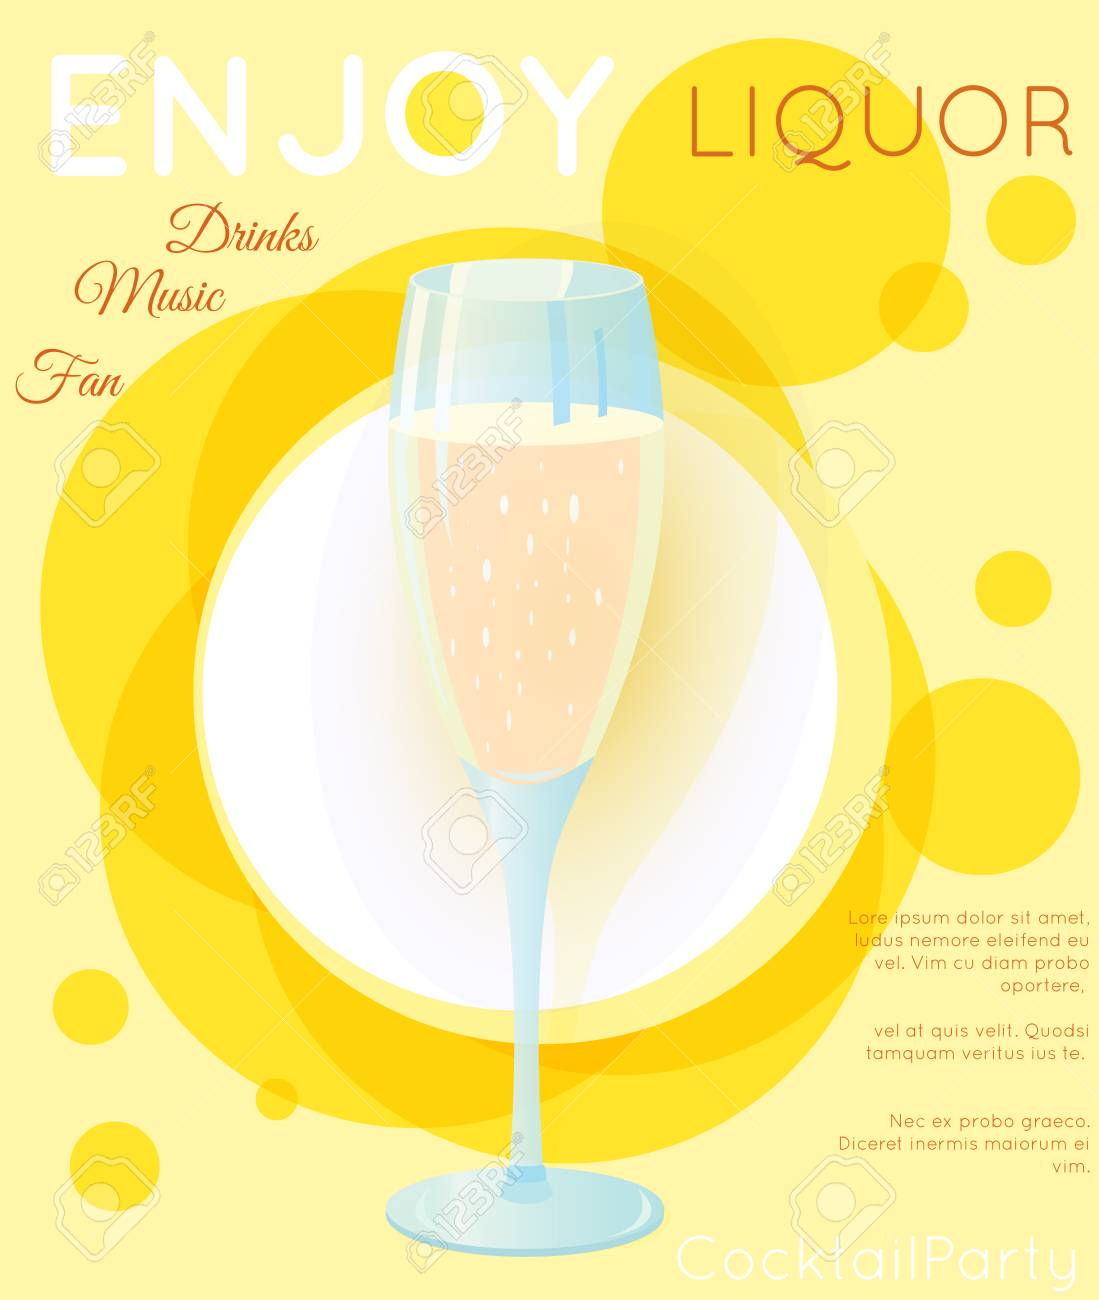 Classic Sparkling Wine Champagne On Yellow CirclesCocktail Illustration Bright Contemporary Flat Background